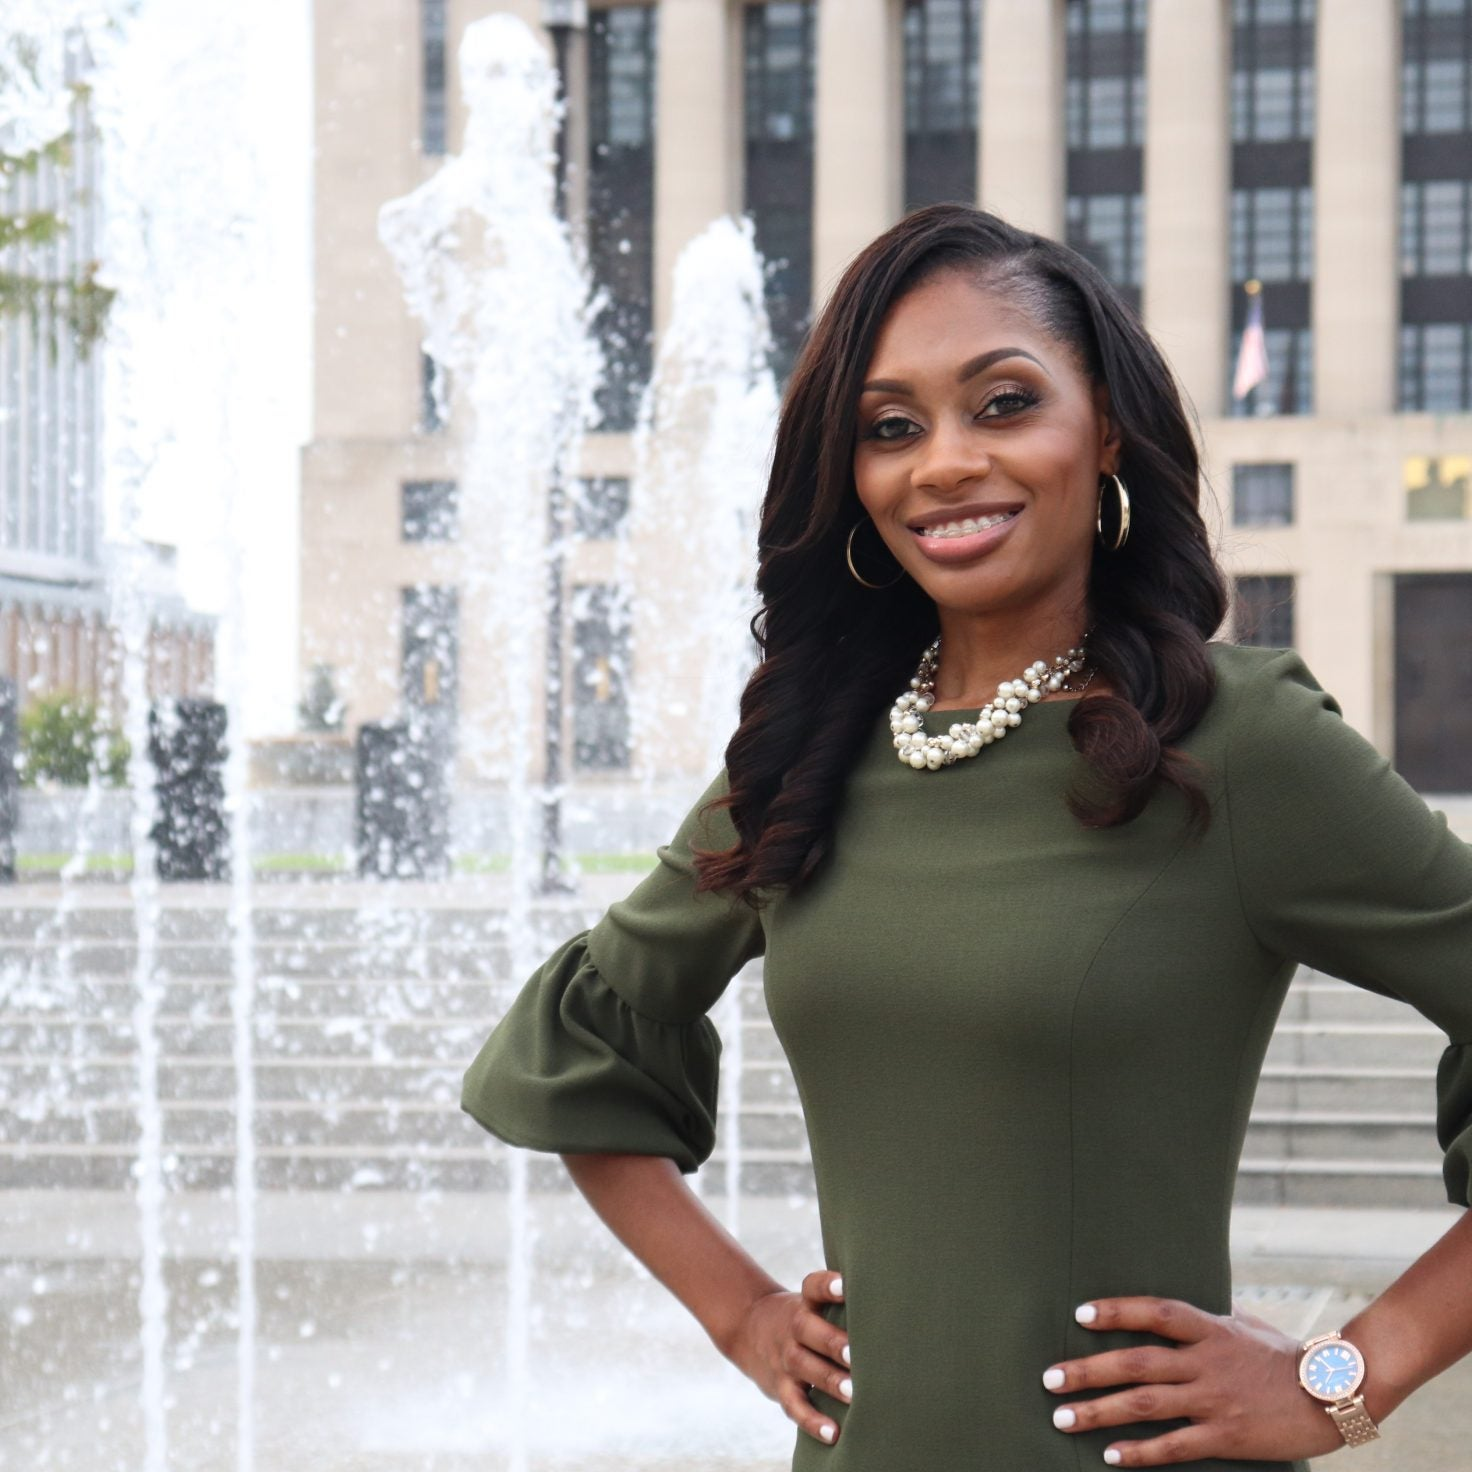 Keeda Haynes Wants To Give A Voice To Her Community